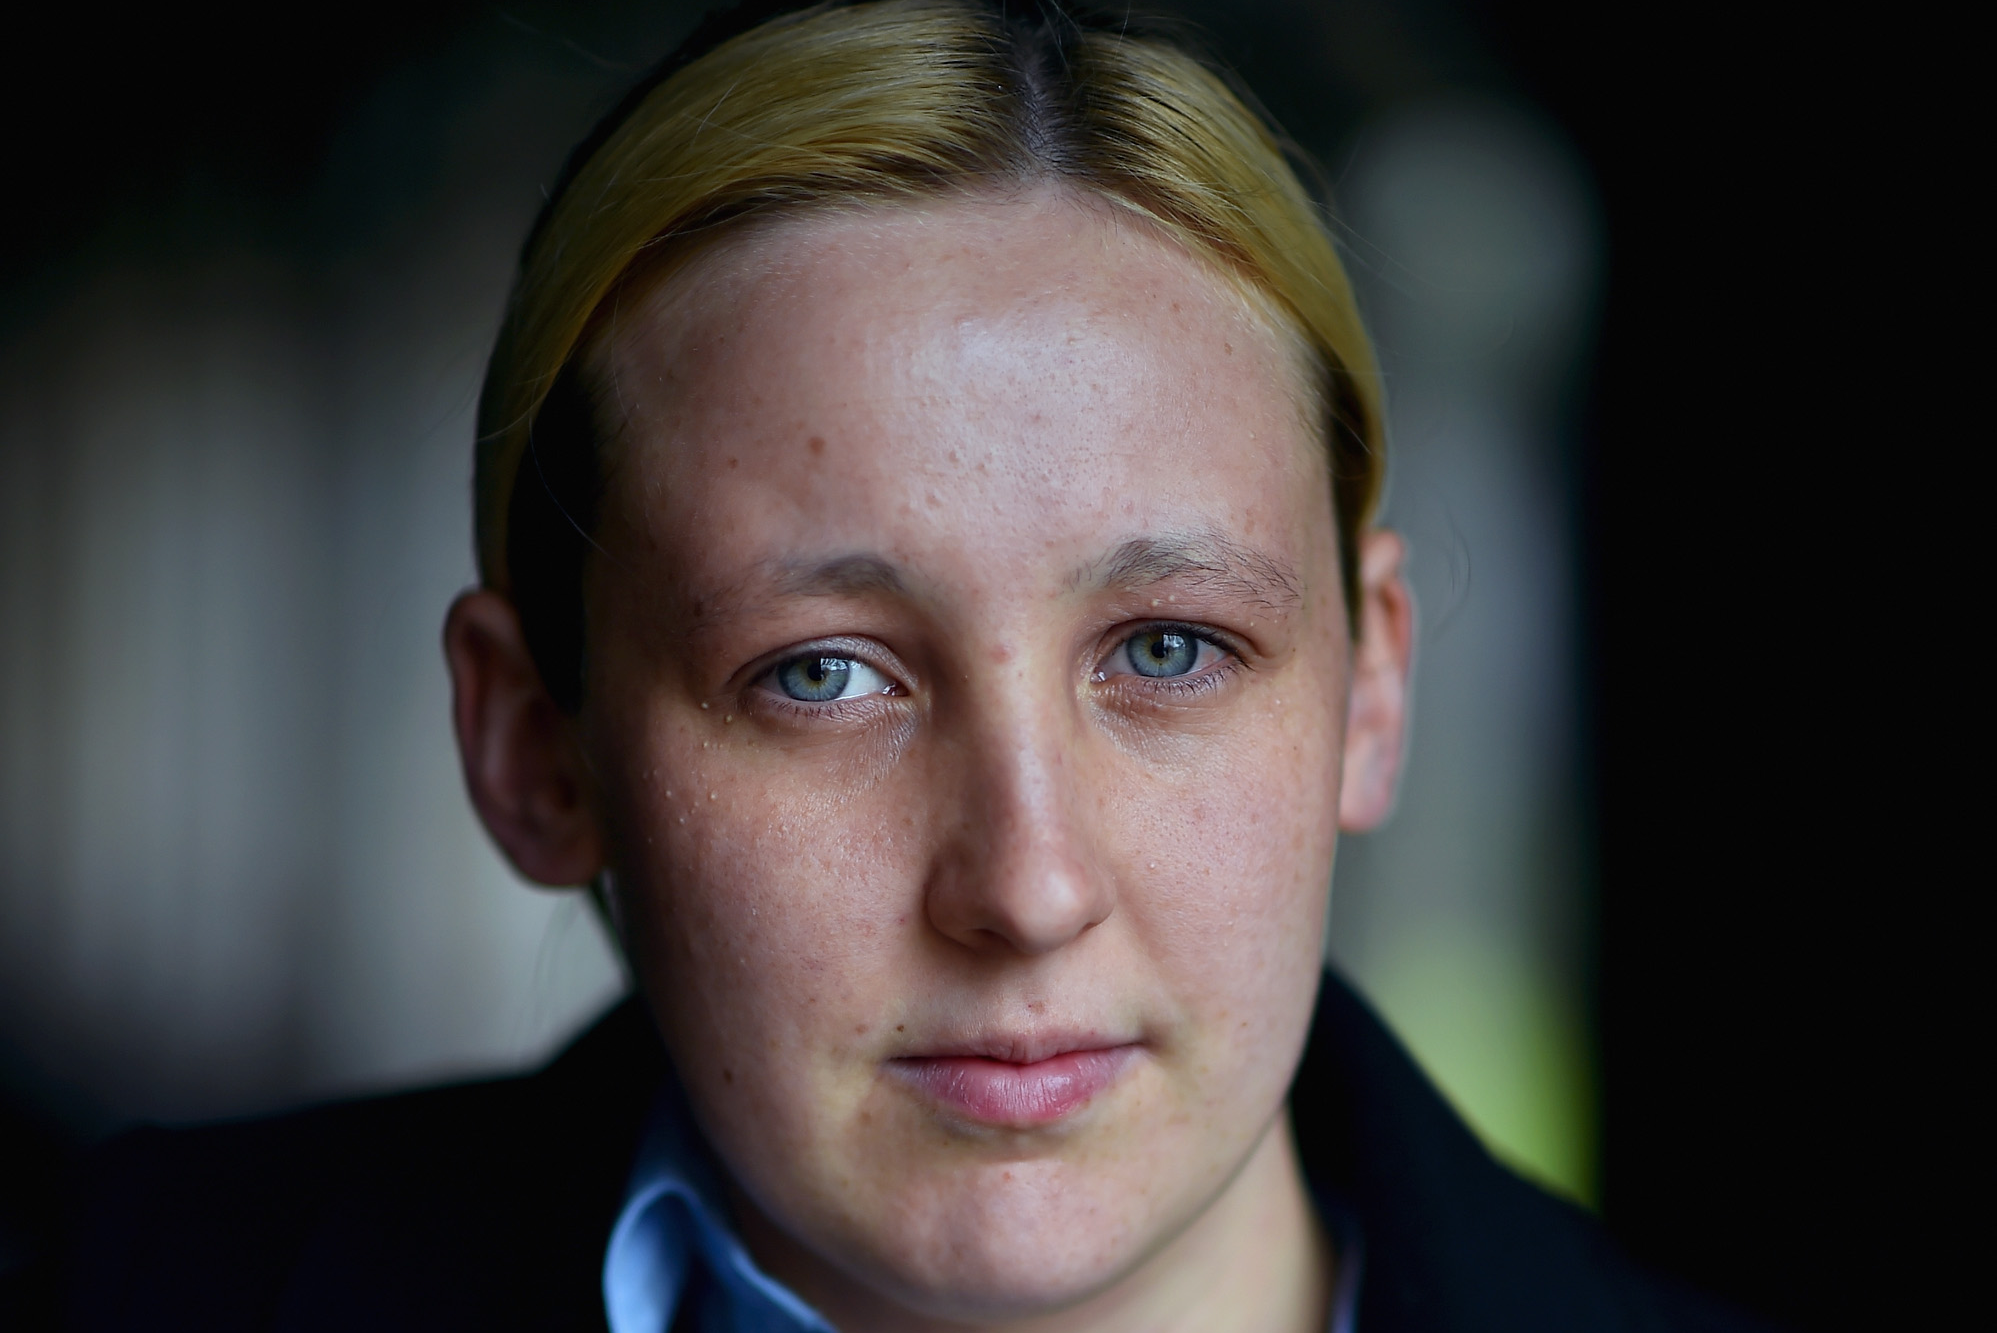 Leader_Nominee_Mhairi Black MP_471510964